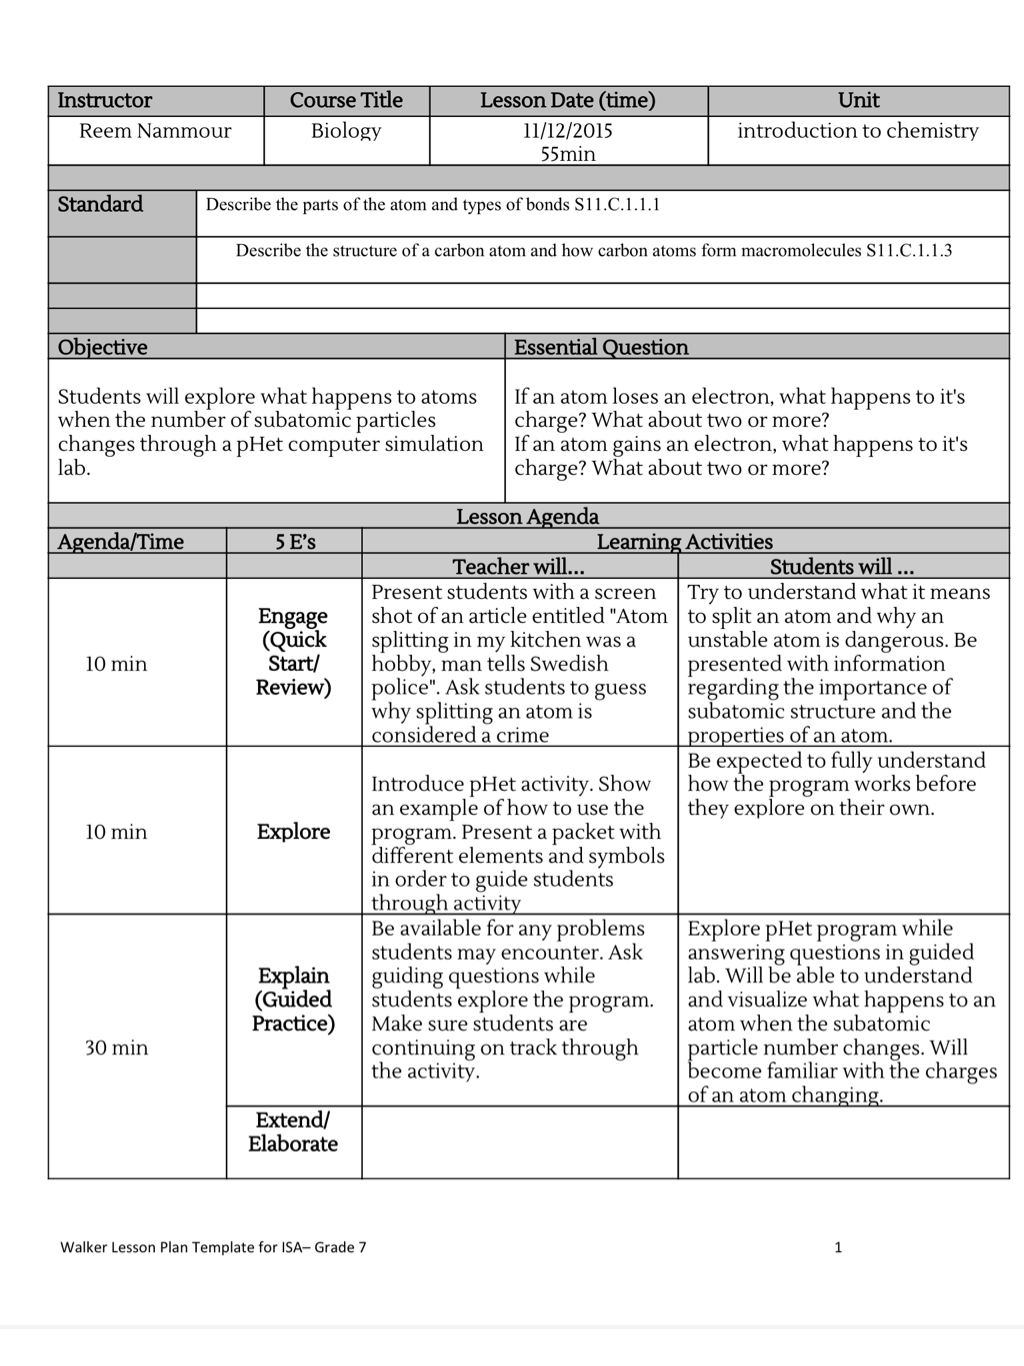 Annotated Lesson Plan And Reflection